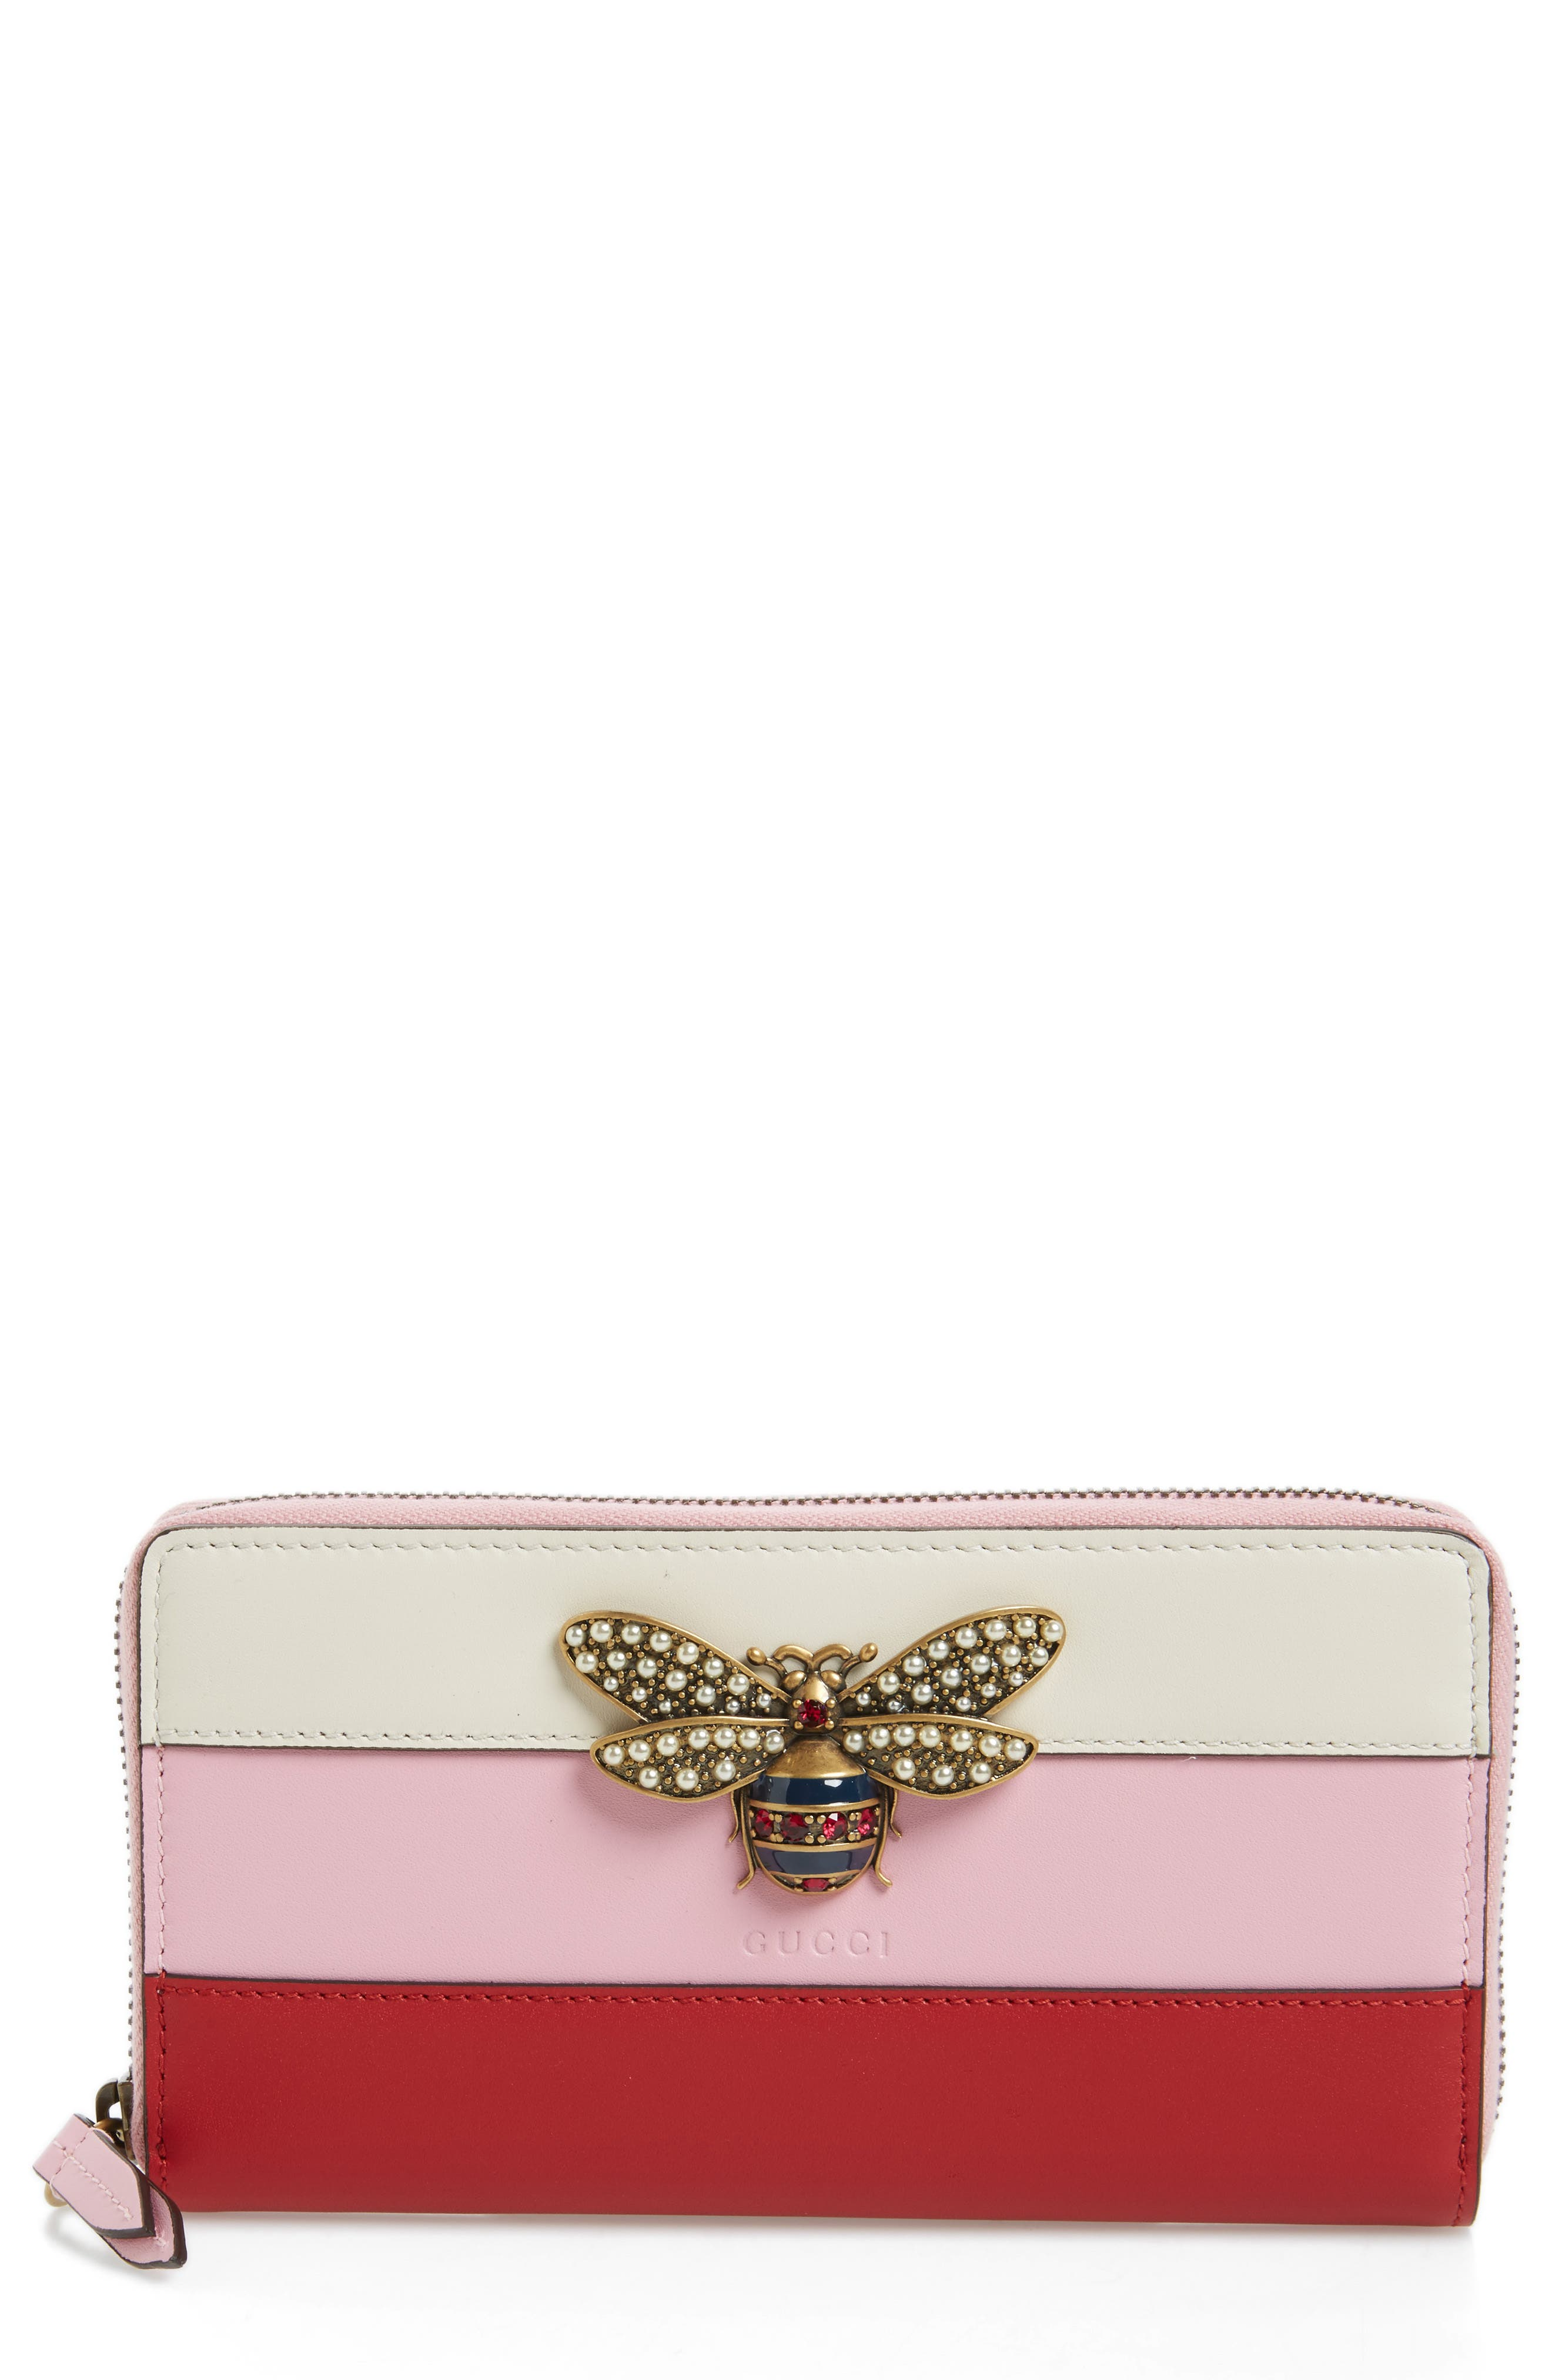 Main Image - Gucci Embellished Bee Leather Zip Around Wallet